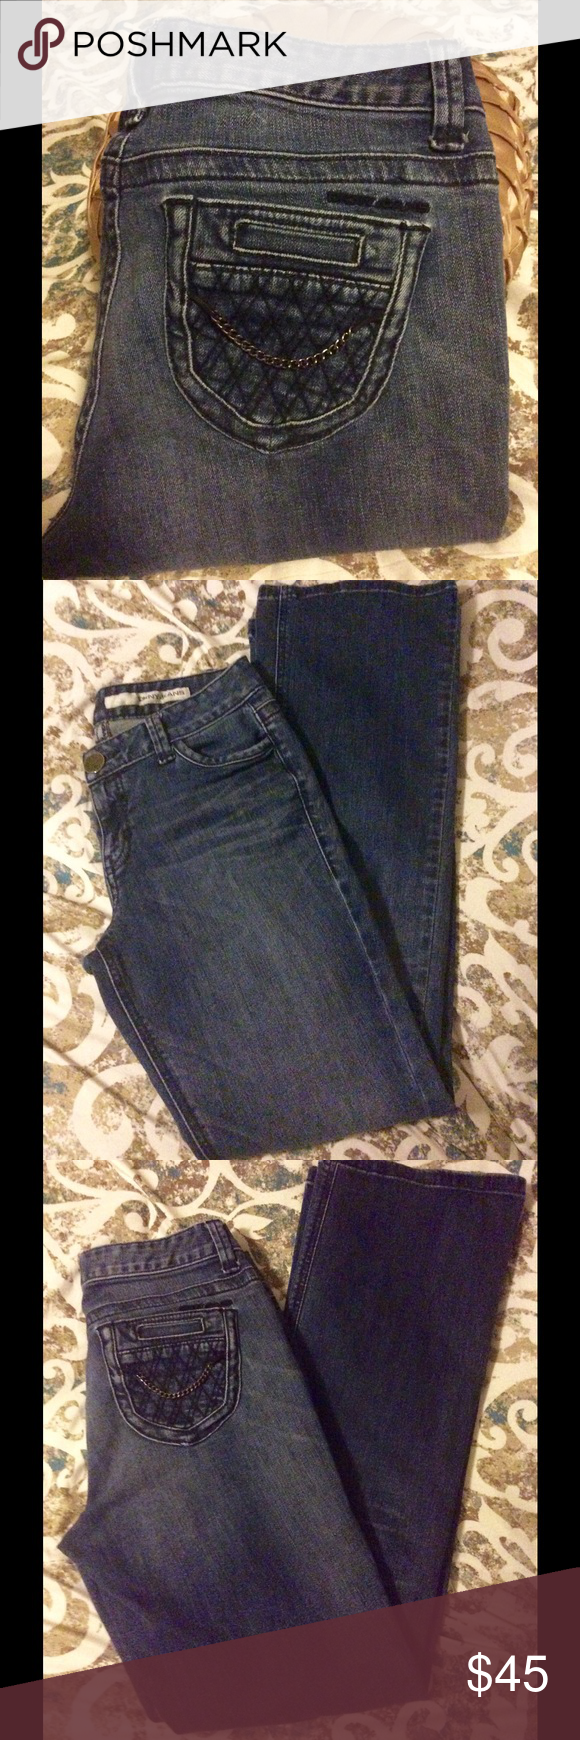 DKNY JEANS💕💕💕Size 6 💕In Perfect Condition worn once! DKNY Jeans Size 6!!!! Adorable pockets with chains! 💕Thank you so much for visiting my closet! If you have any questions please feel free to ask. 😁Also, comment your name below and I will check out your closet as well. 💕💕💕💕💕💕 DKNY JEANS Jeans